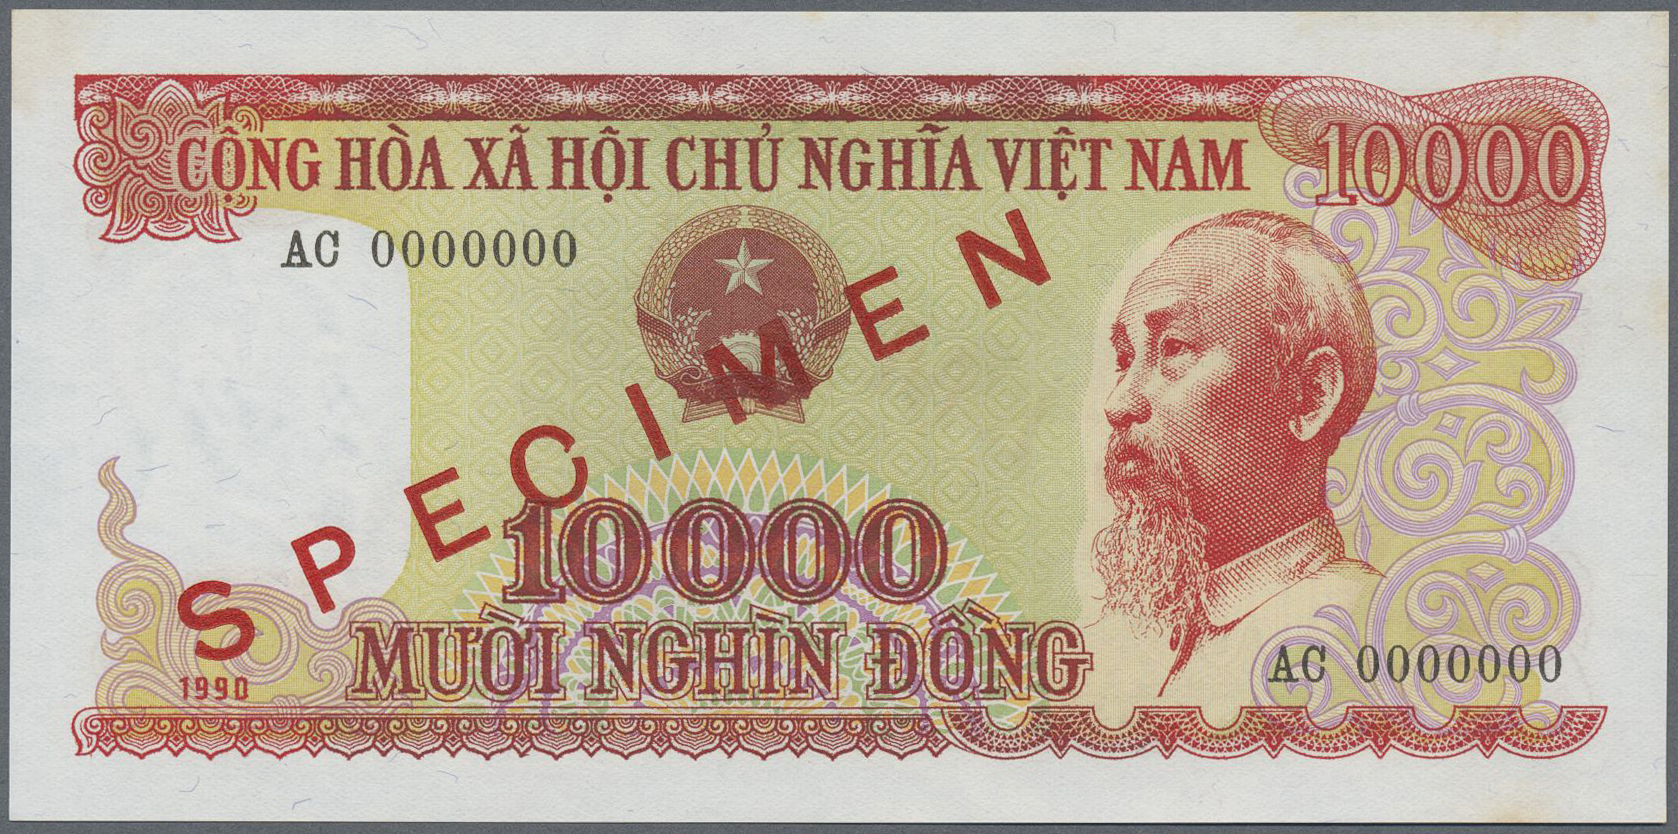 Lot 2250 - Vietnam | Banknoten  -  Auktionshaus Christoph Gärtner GmbH & Co. KG Banknotes & Coins Auction #39 Day 2